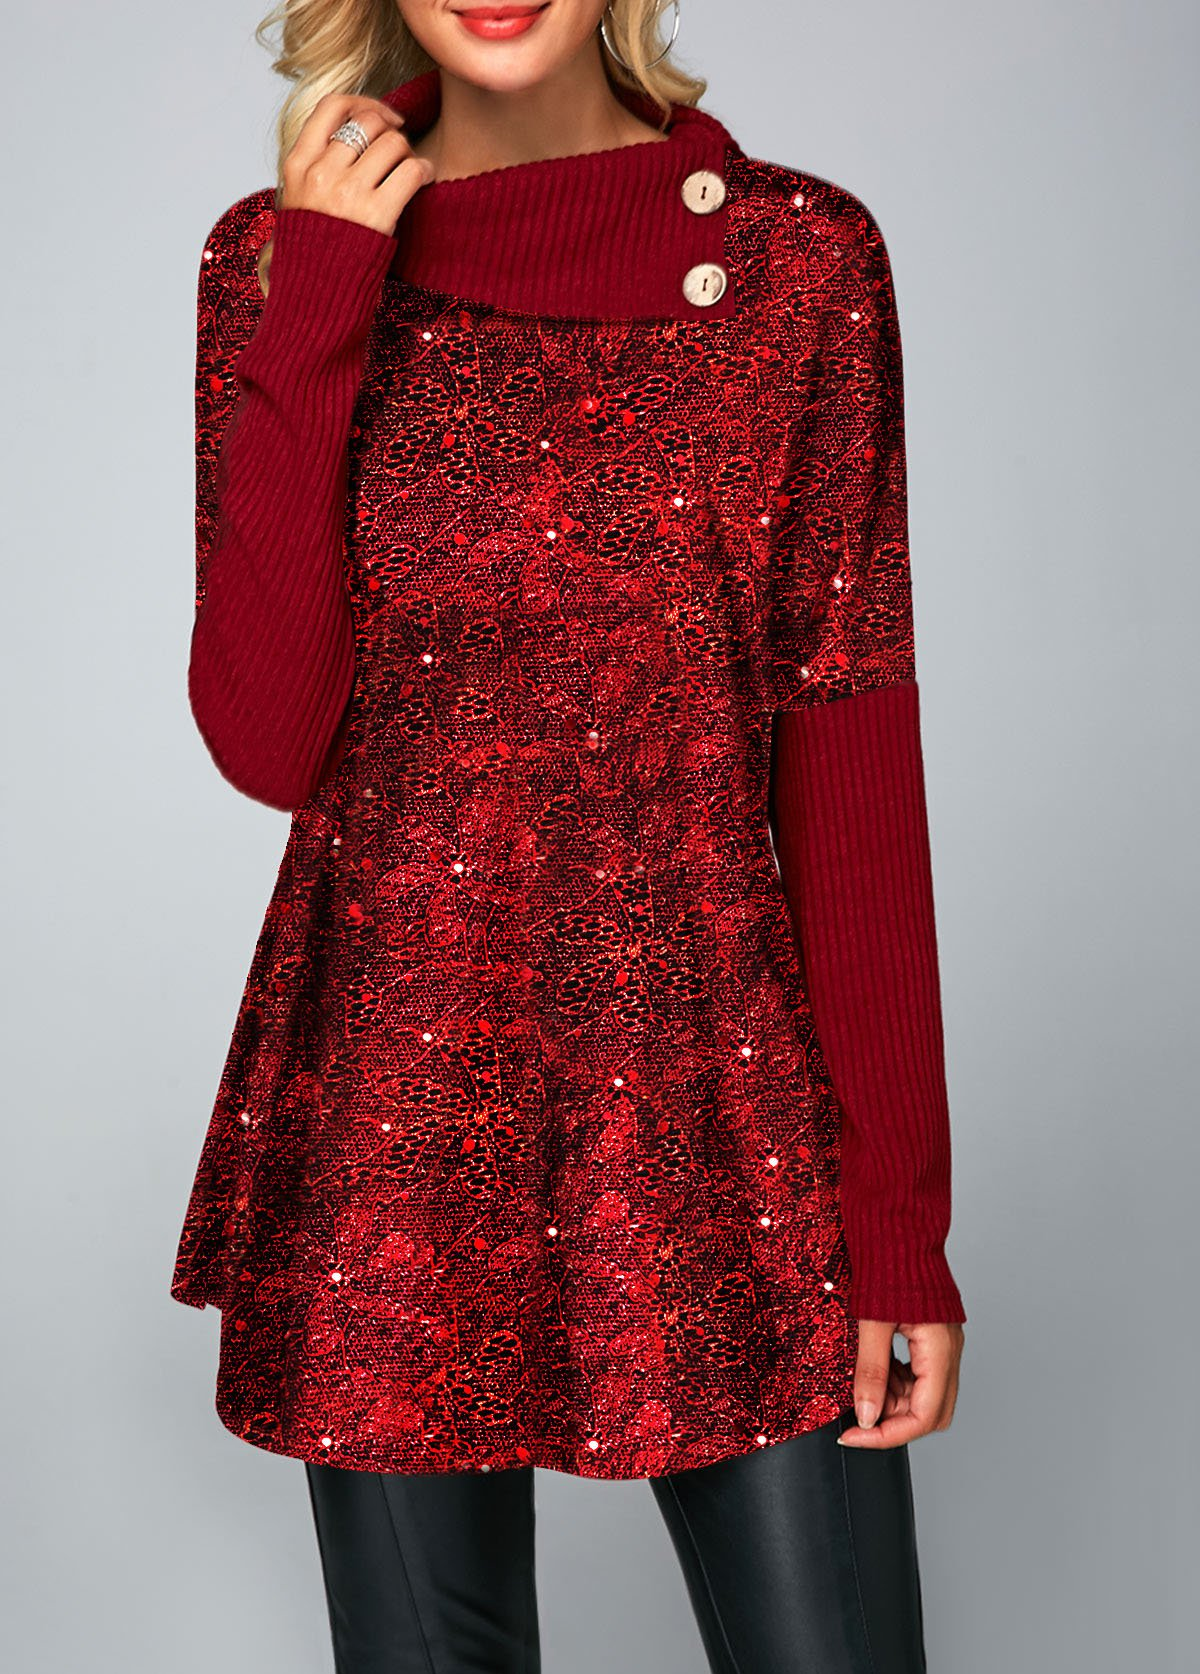 Sequin Embellished Wine Red Button Detail T Shirt